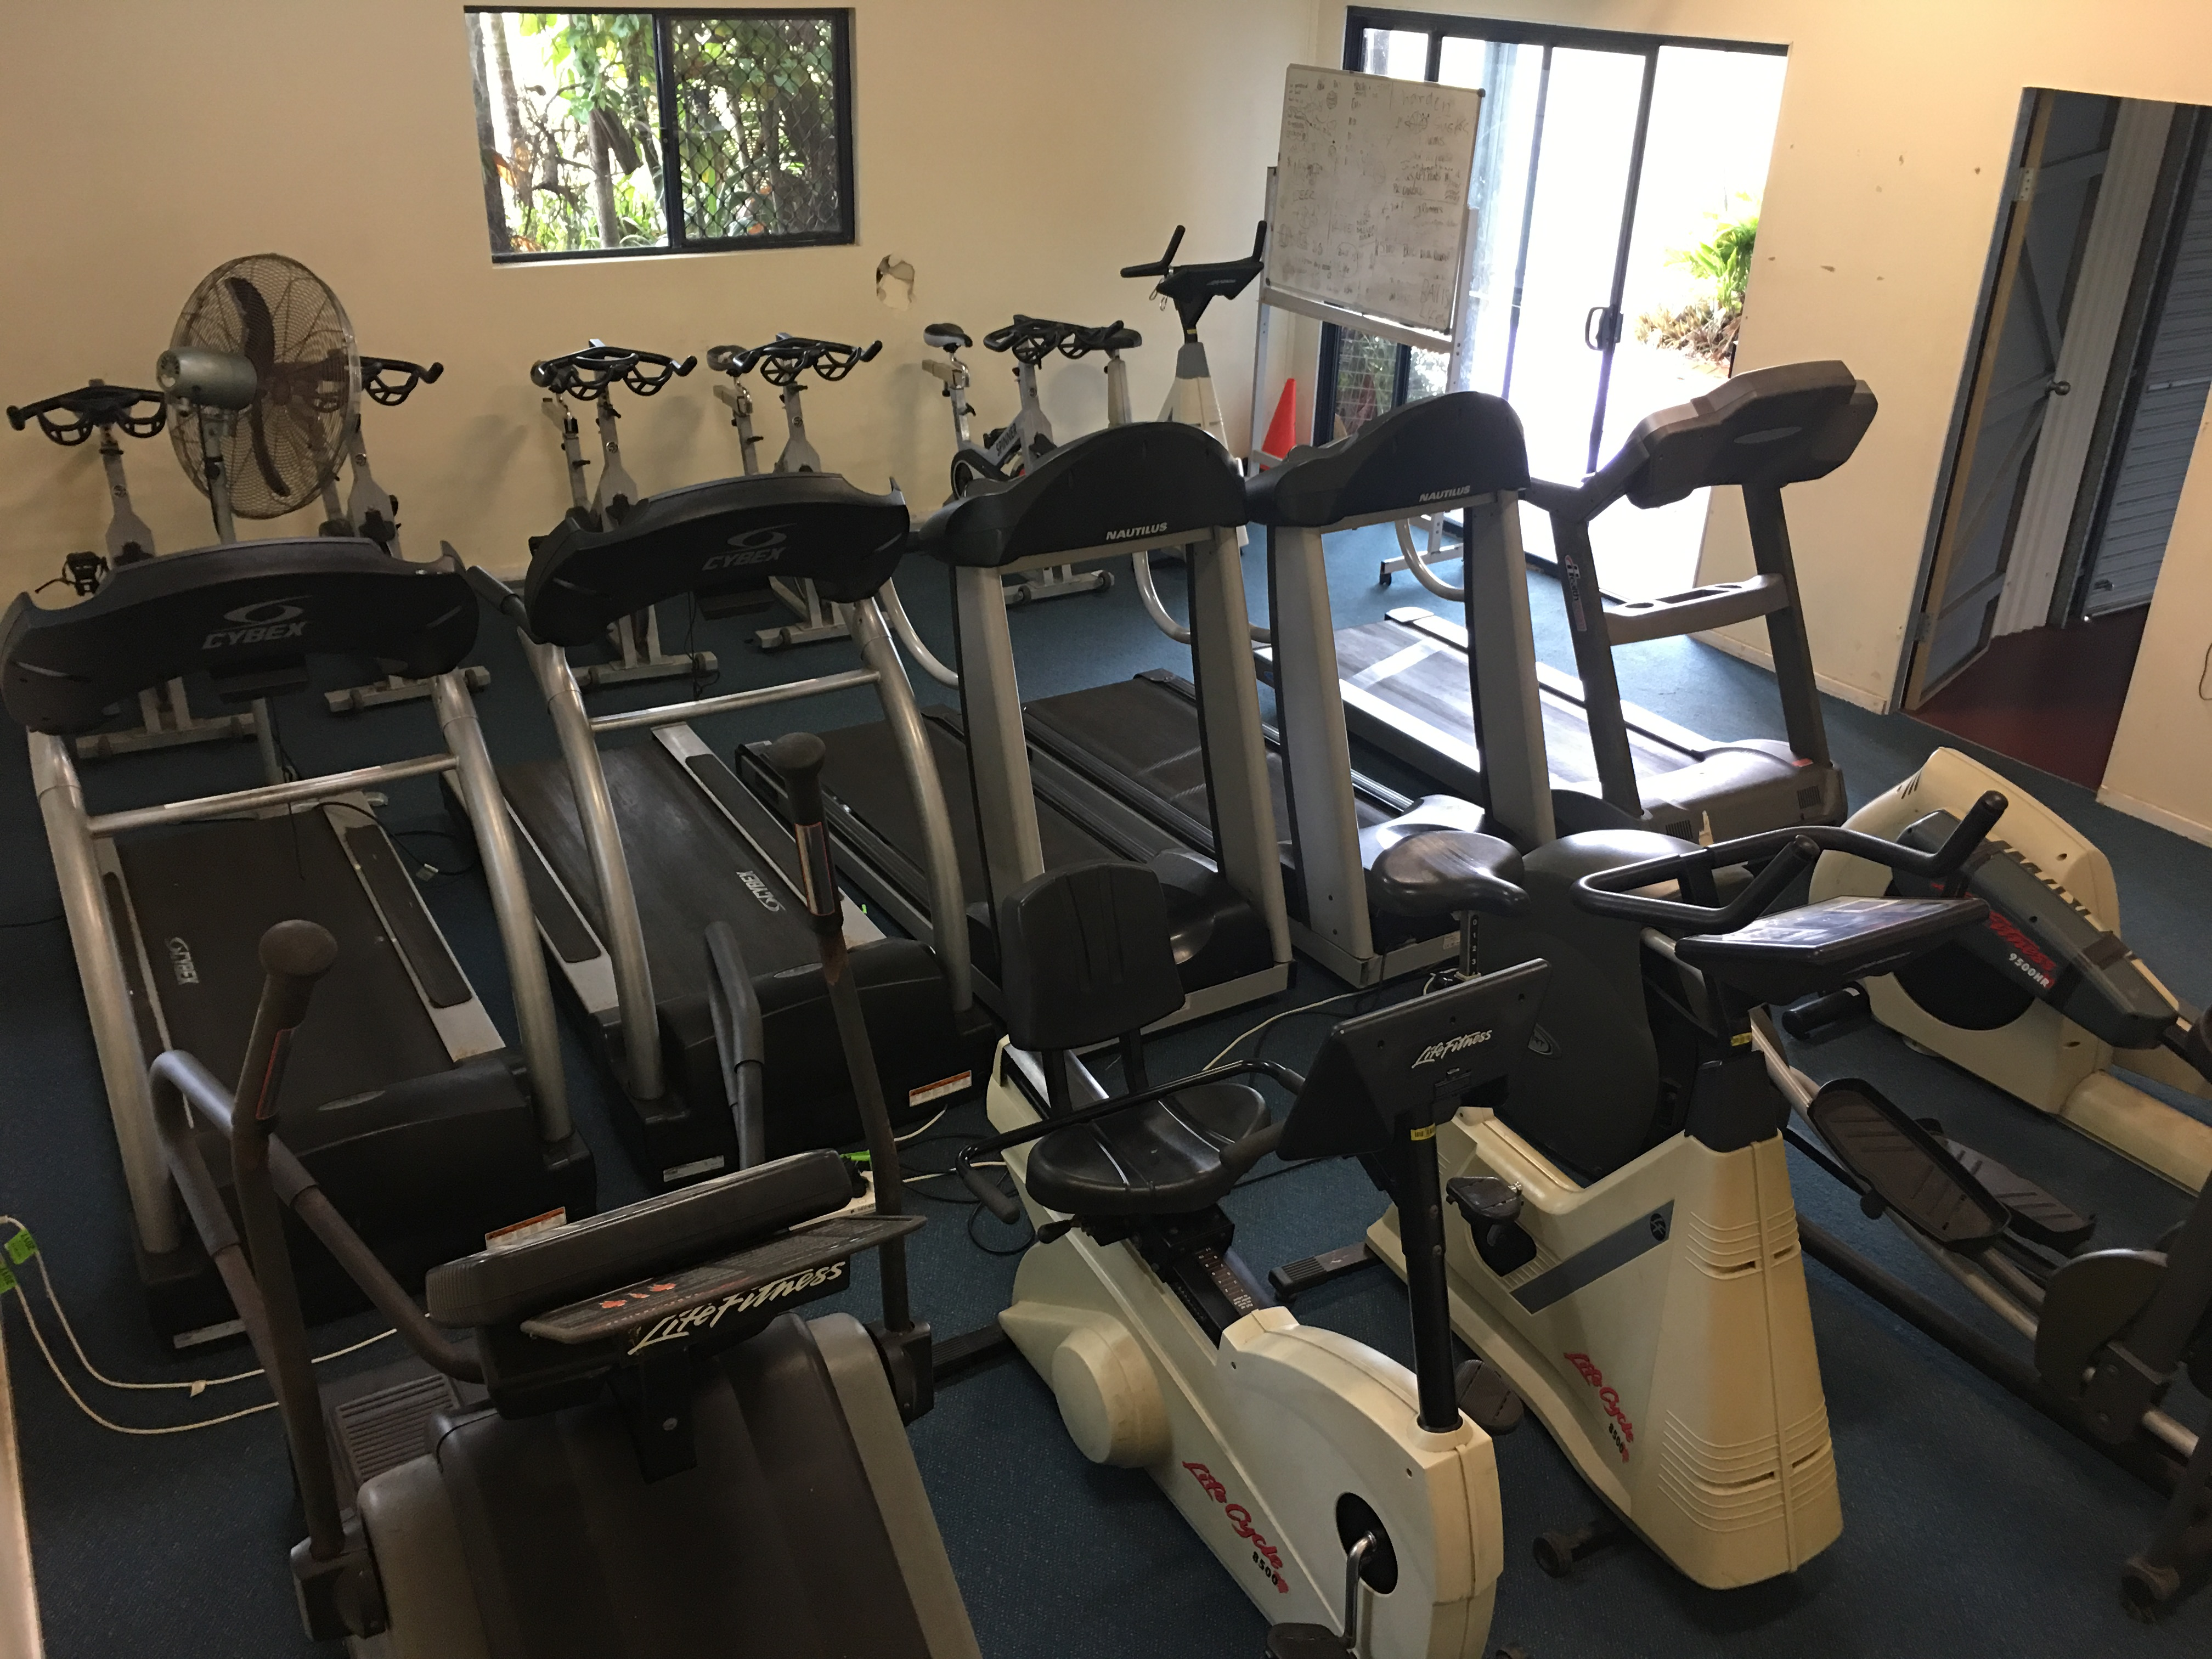 School Gym - Cardio Room